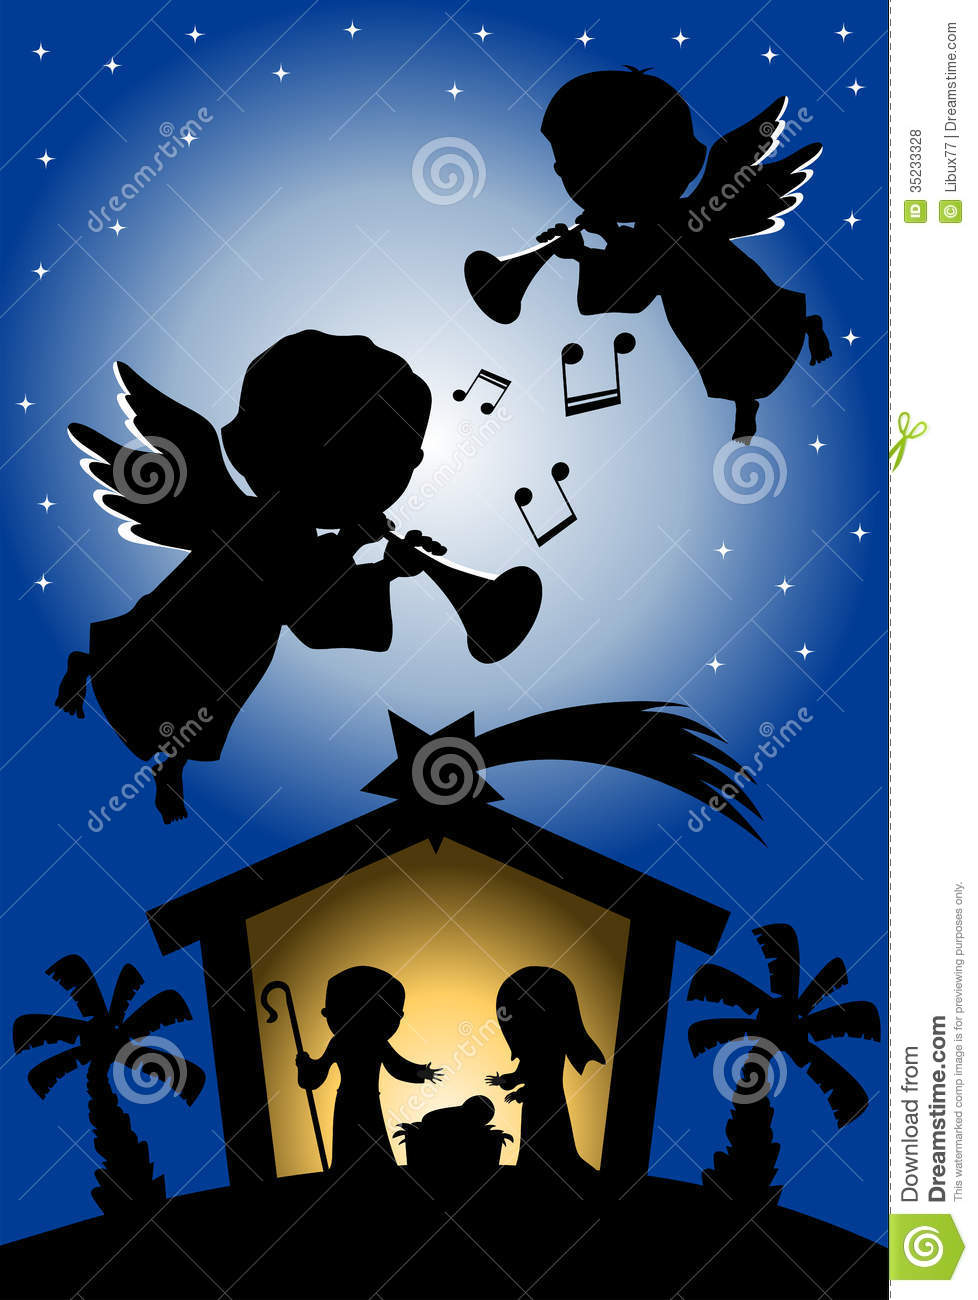 christmas nativity scene silhouette with angels royalty free stock